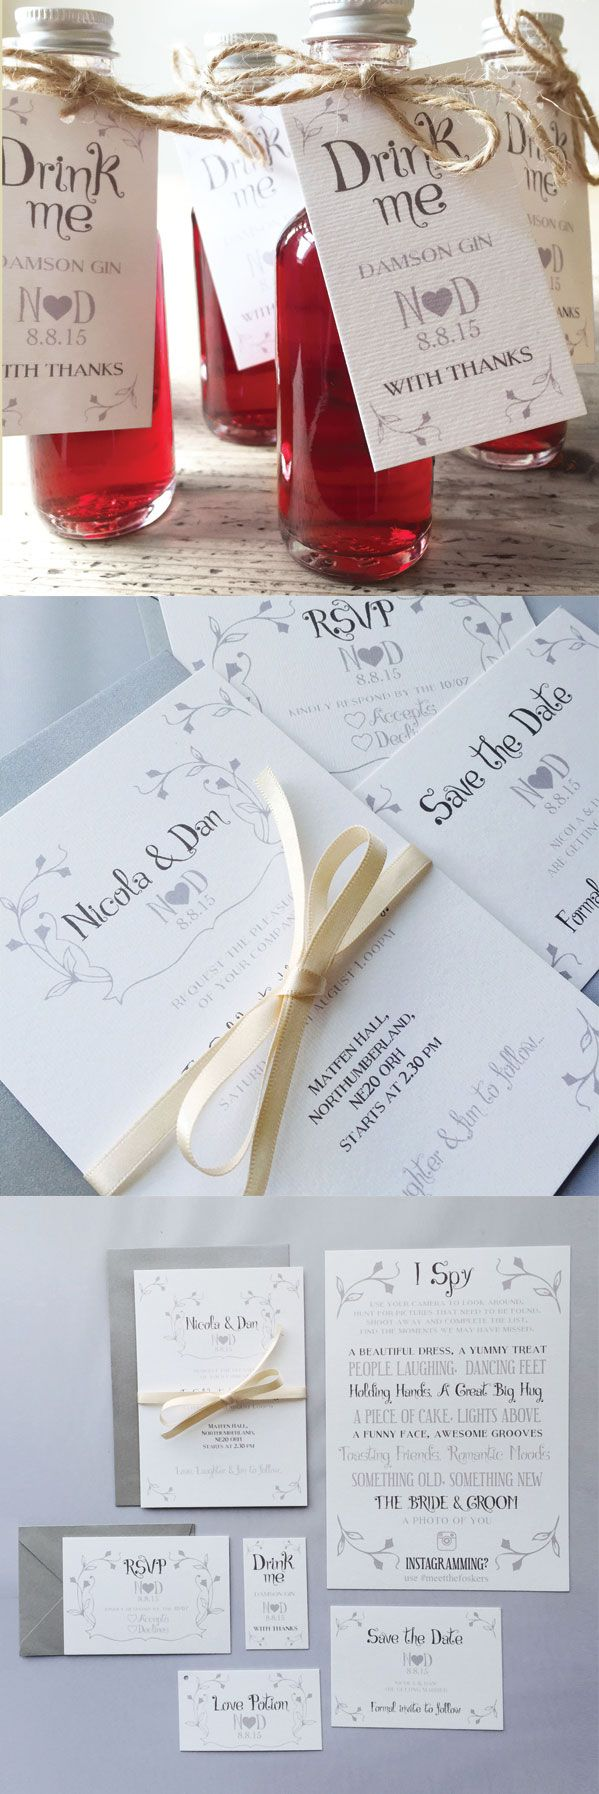 save the date wedding stationery uk%0A ending a cover letter